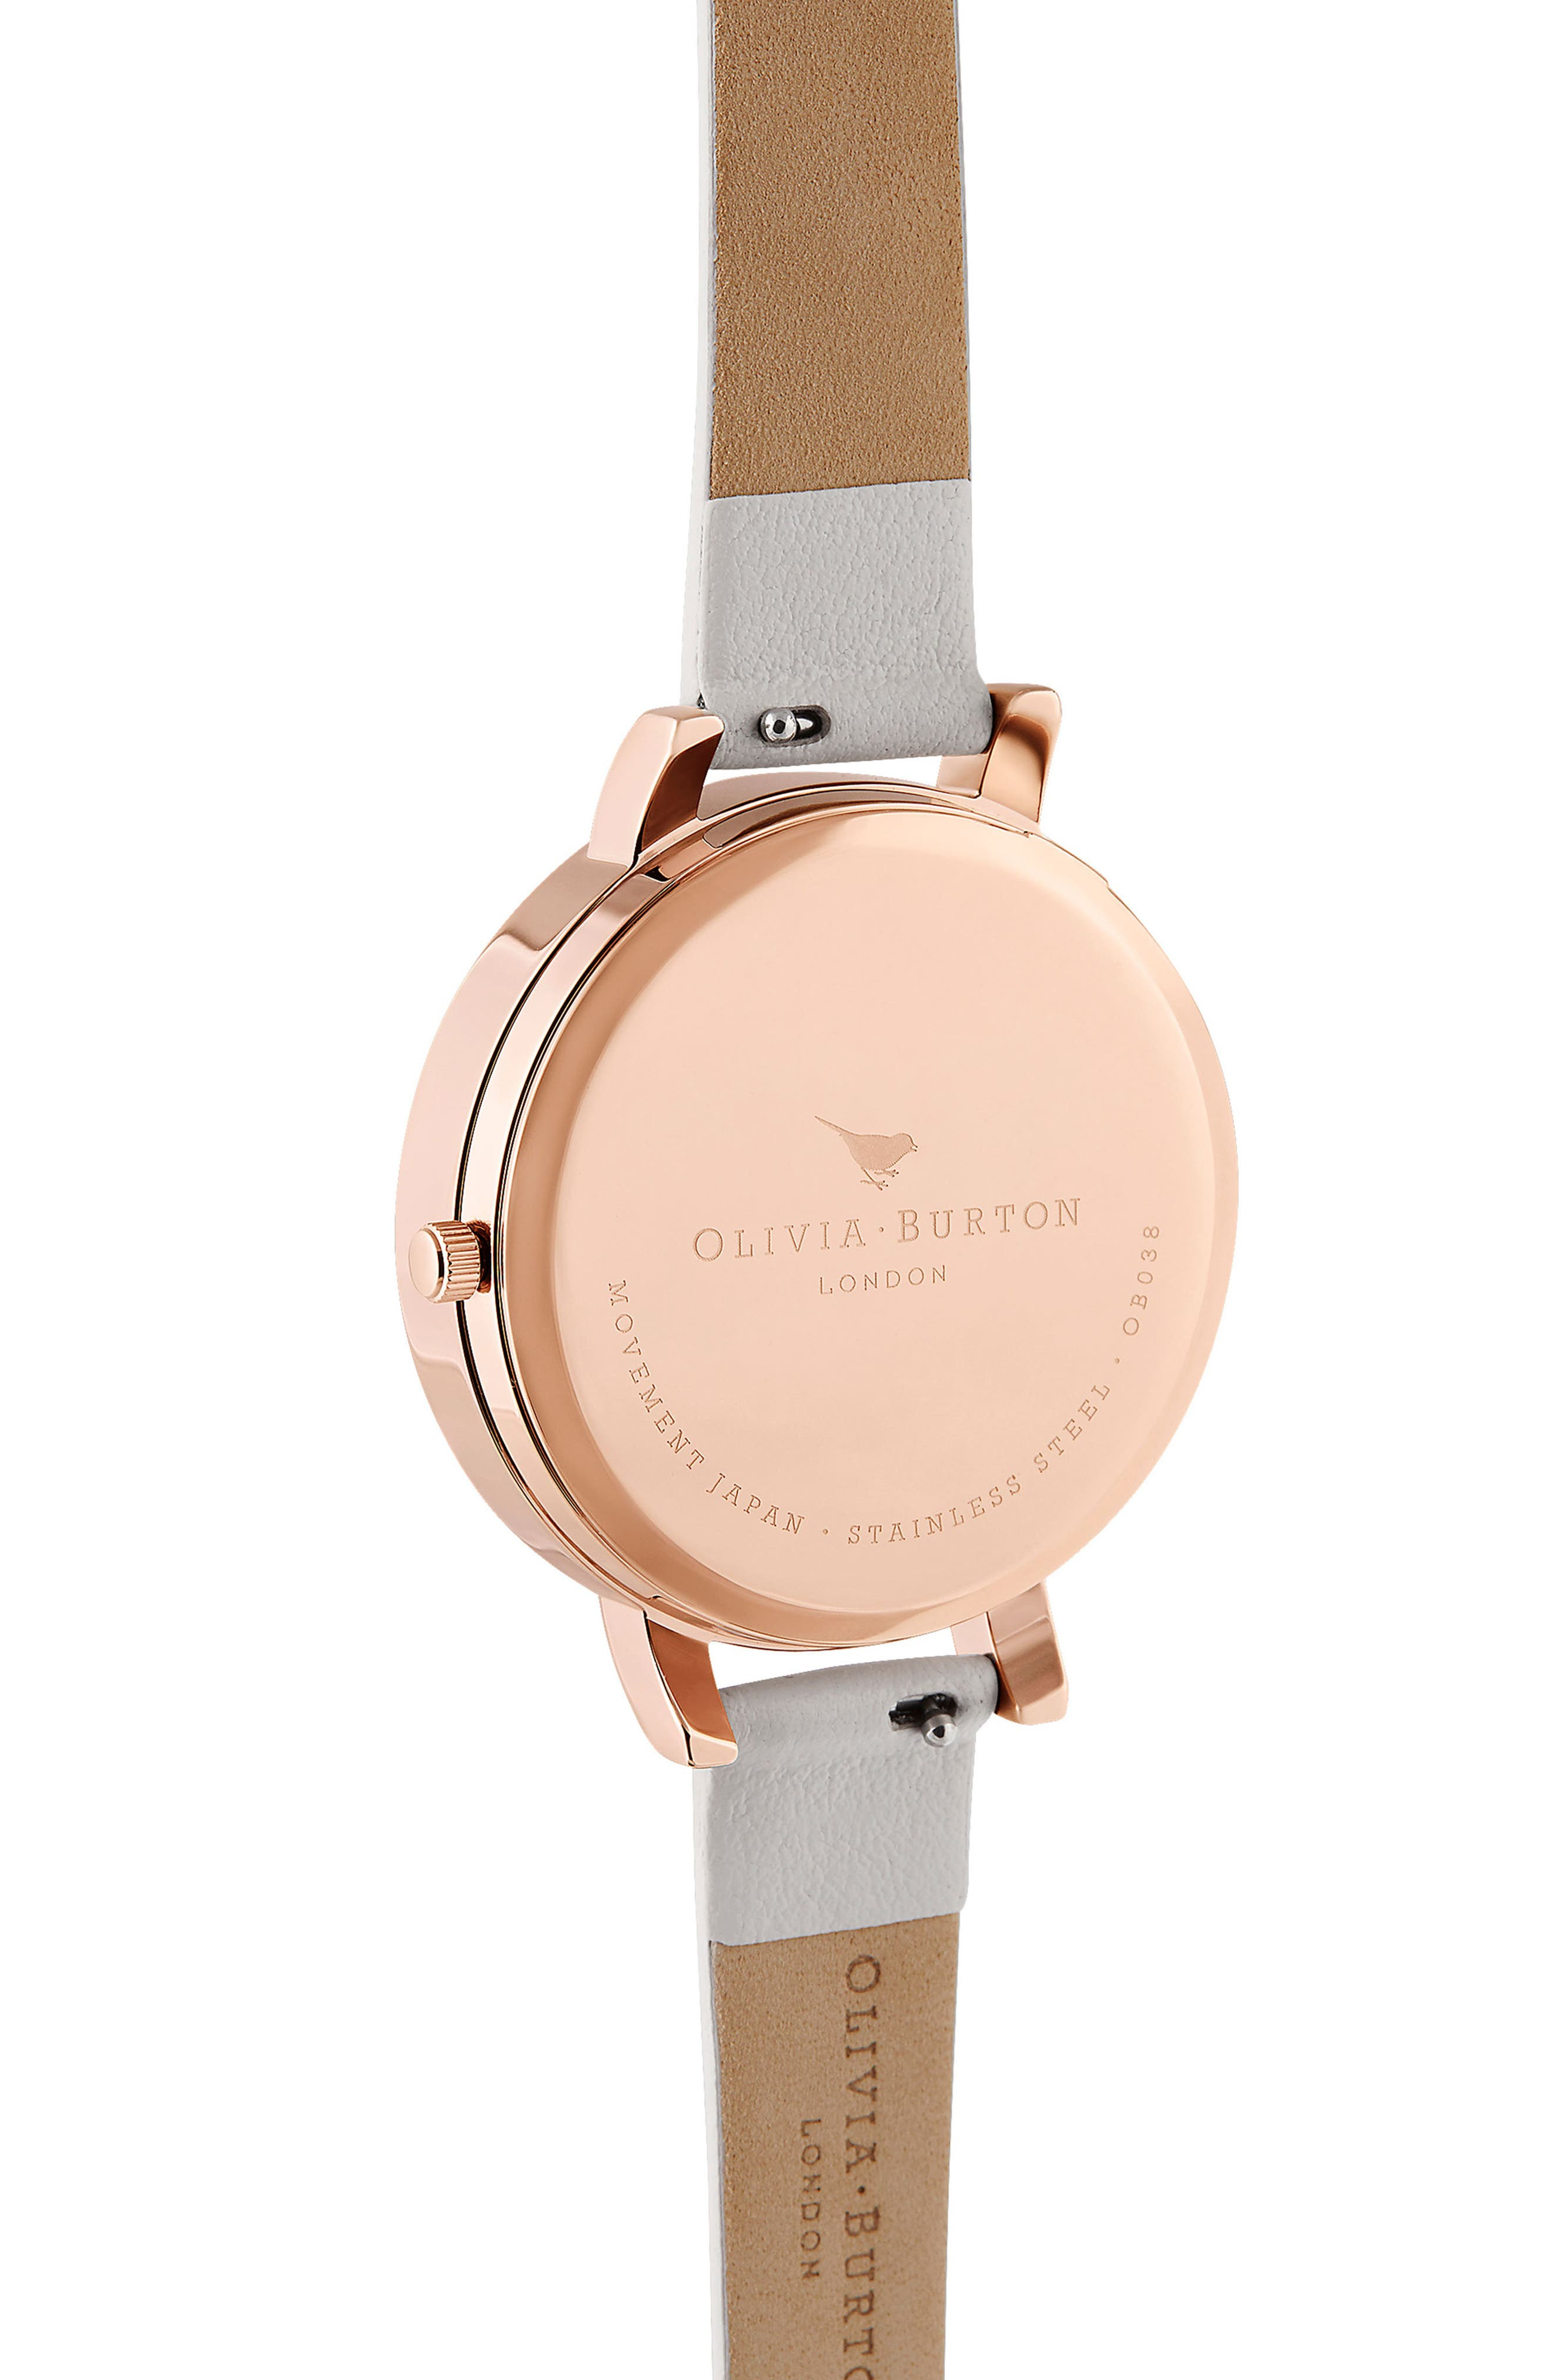 OLIVIA BURTON, 'Molded Bee' Leather Strap Watch, 38mm, Alternate thumbnail 3, color, BLUSH/ SUNRAY BEE/ ROSE GOLD